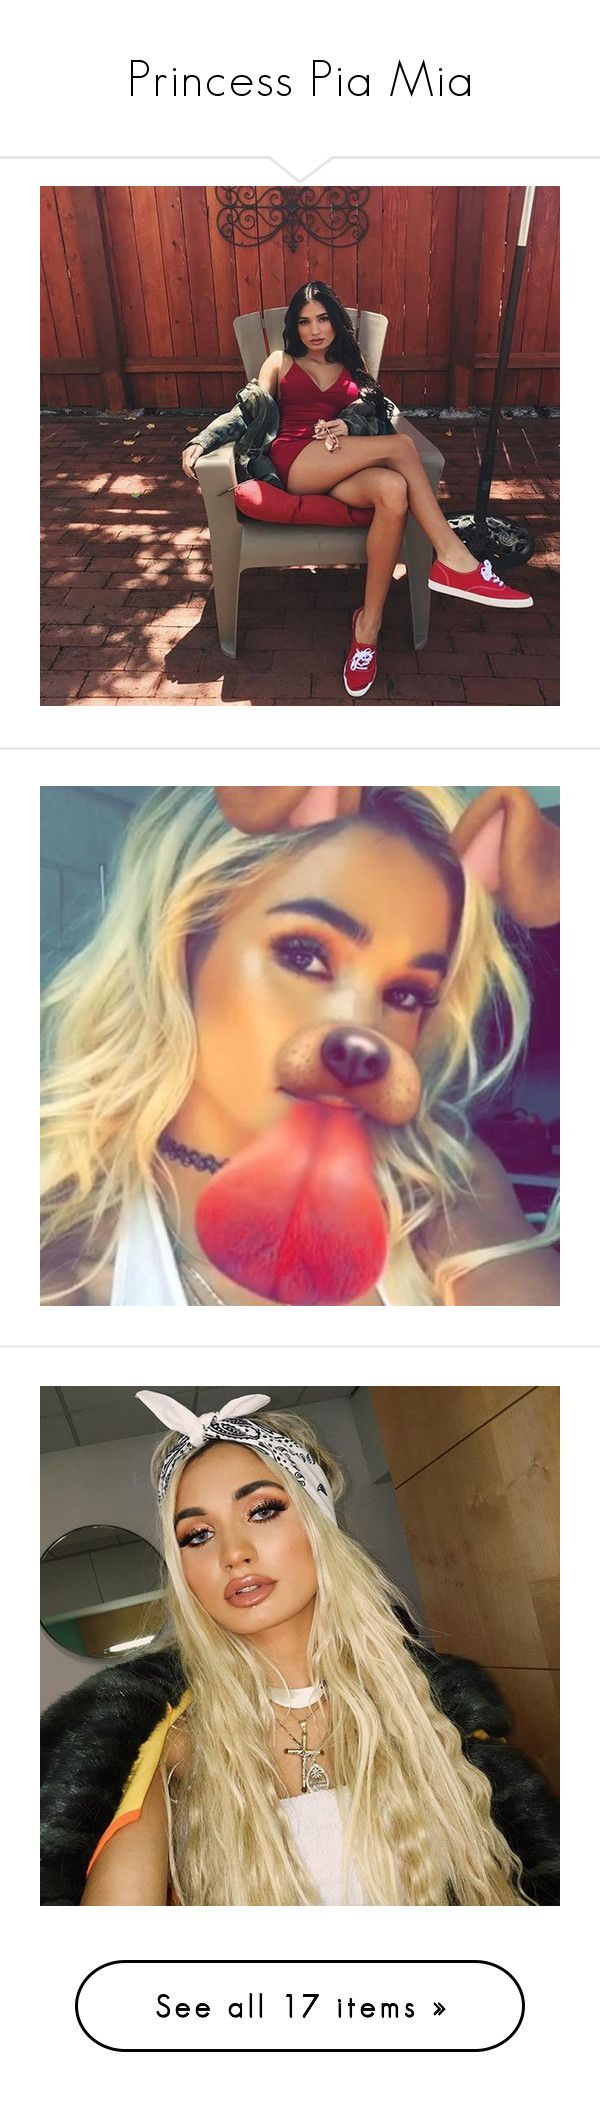 """""""Princess Pia Mia"""" by xxcrazycutexx ❤ liked on Polyvore featuring pia mia, jewelry, earrings, celebrity and people"""